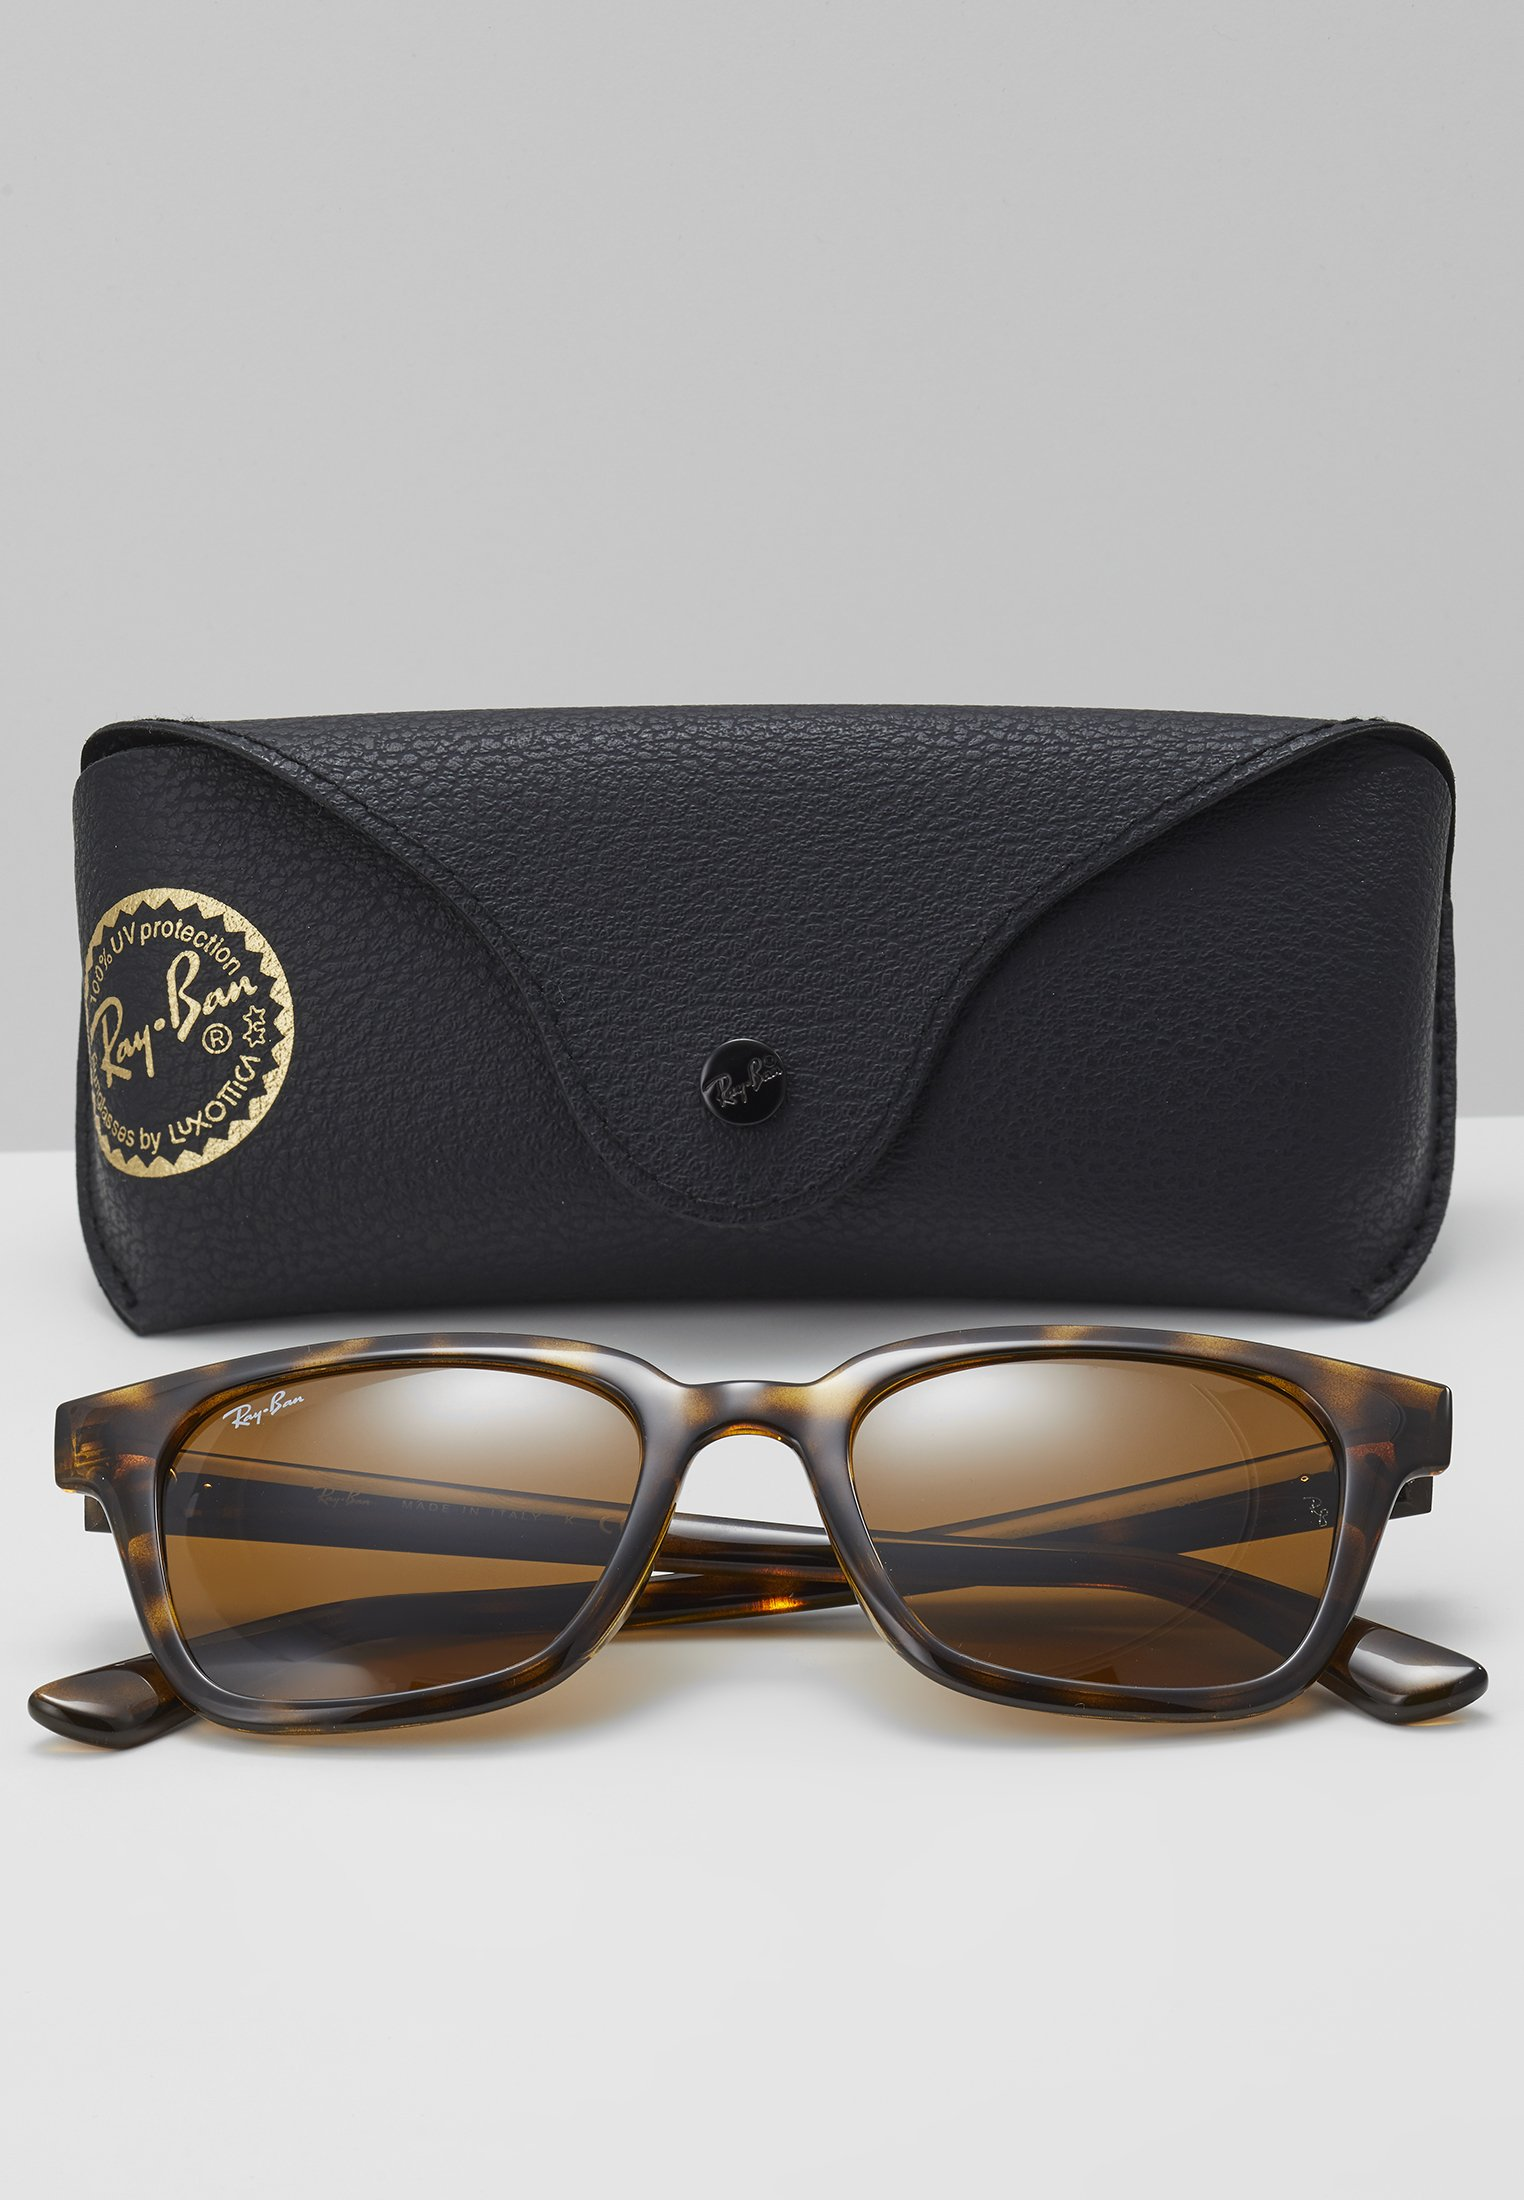 Ray-Ban Solbriller - brown/brun 8oDgR2G5itiHY3J